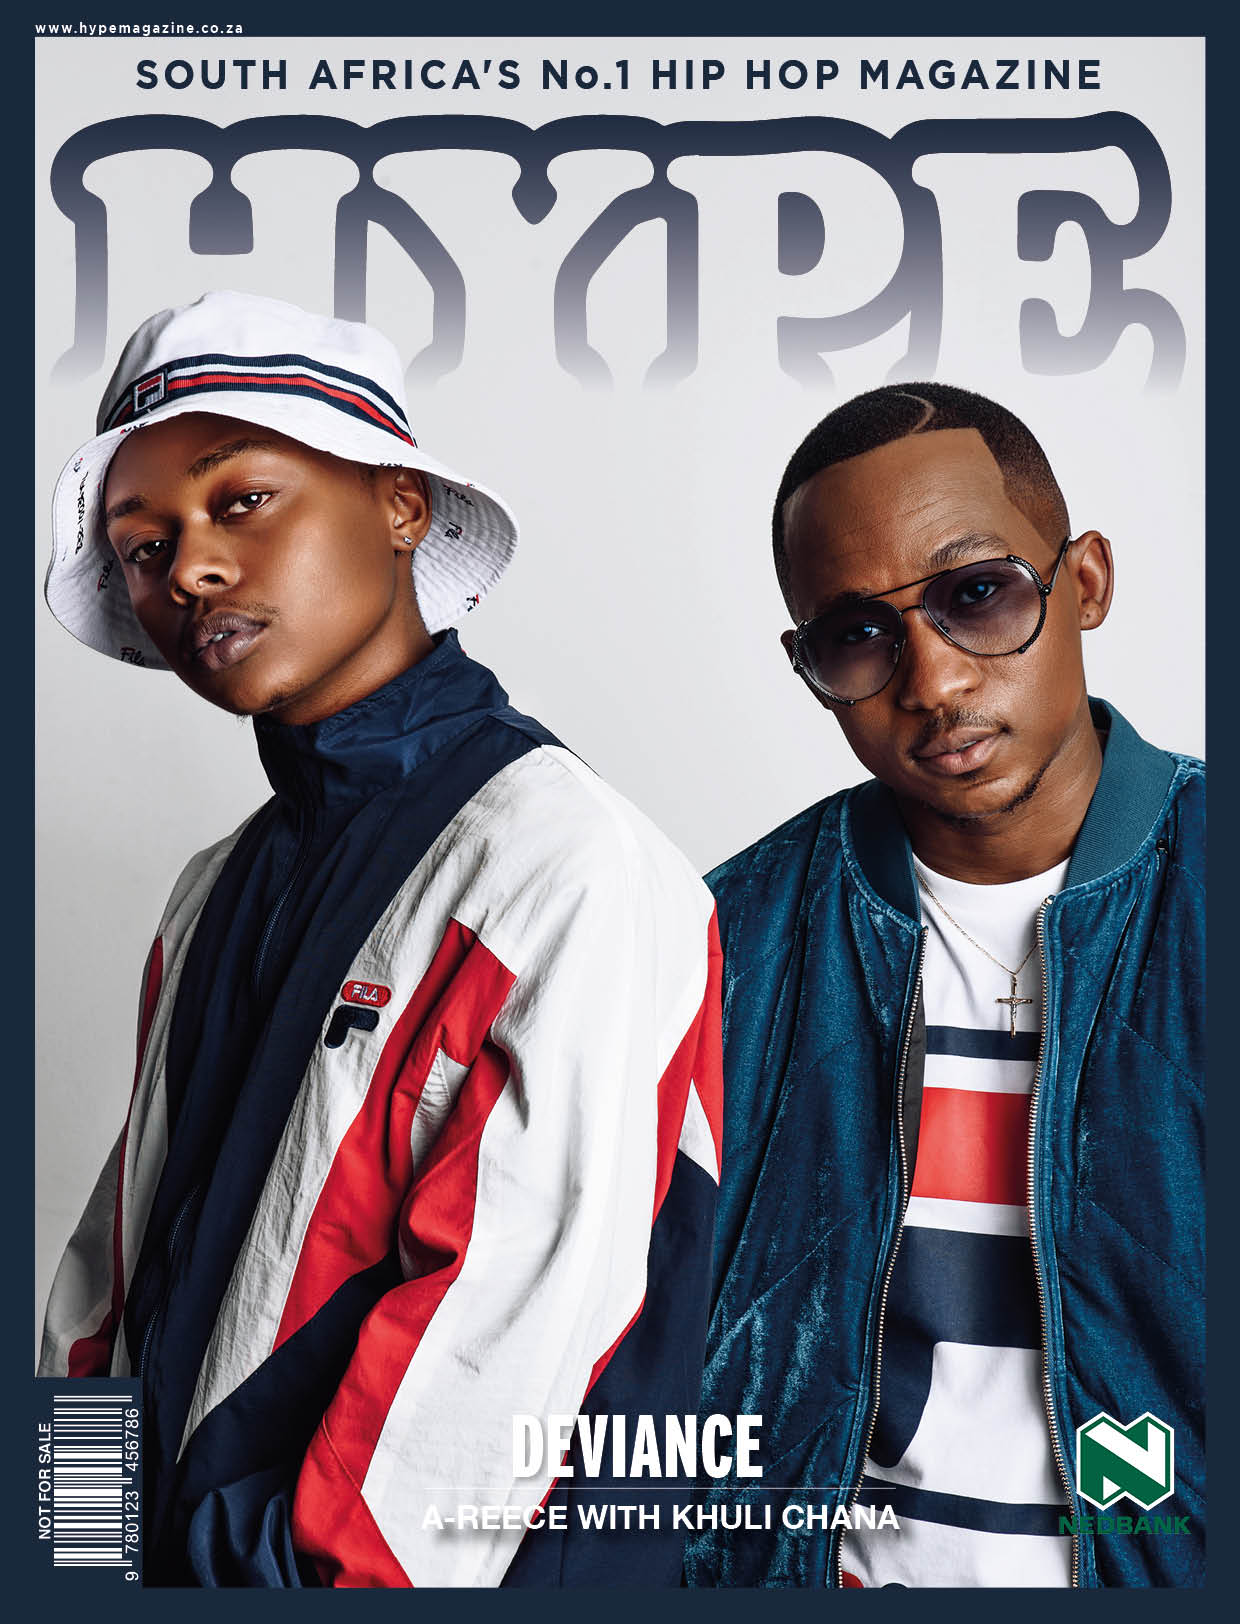 slikour on life Slikour On Life Shows Love To Lyricism With 'Verse Of The Year Awards' Khuli Chana A Reece2